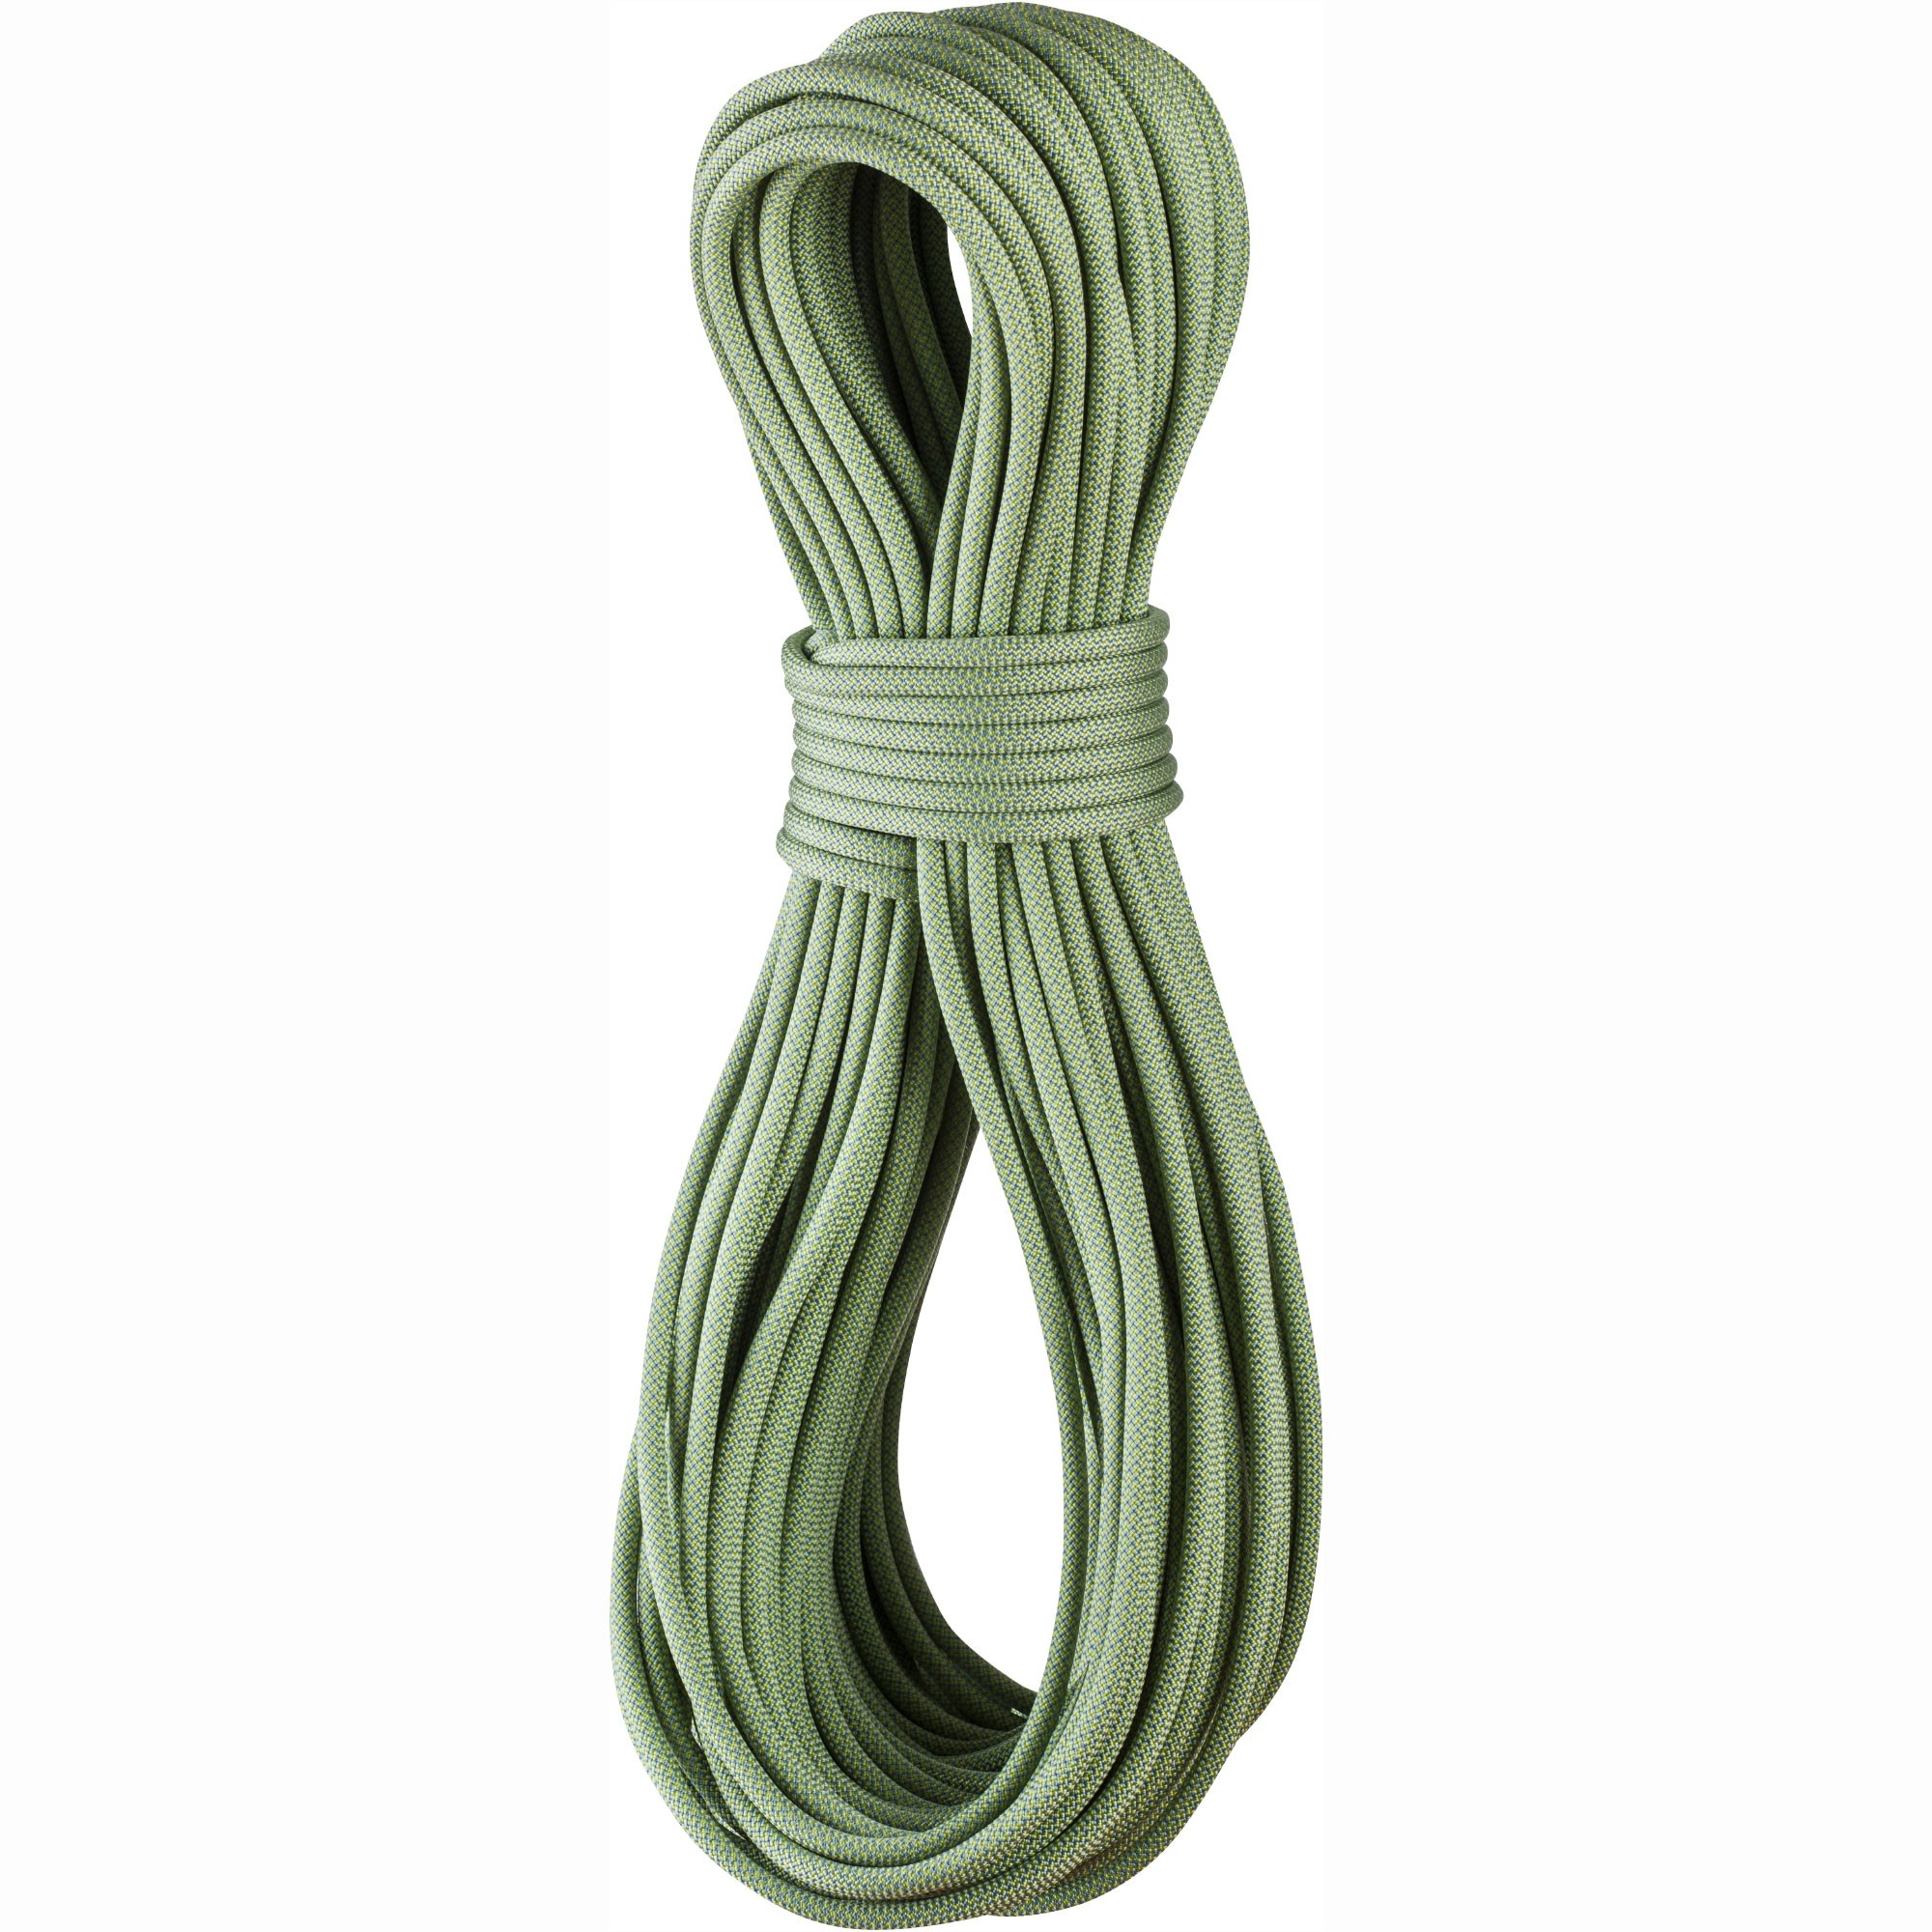 Edelrid Skimmer Pro Dry 7.1mm Half/Twin Rope - Oasis